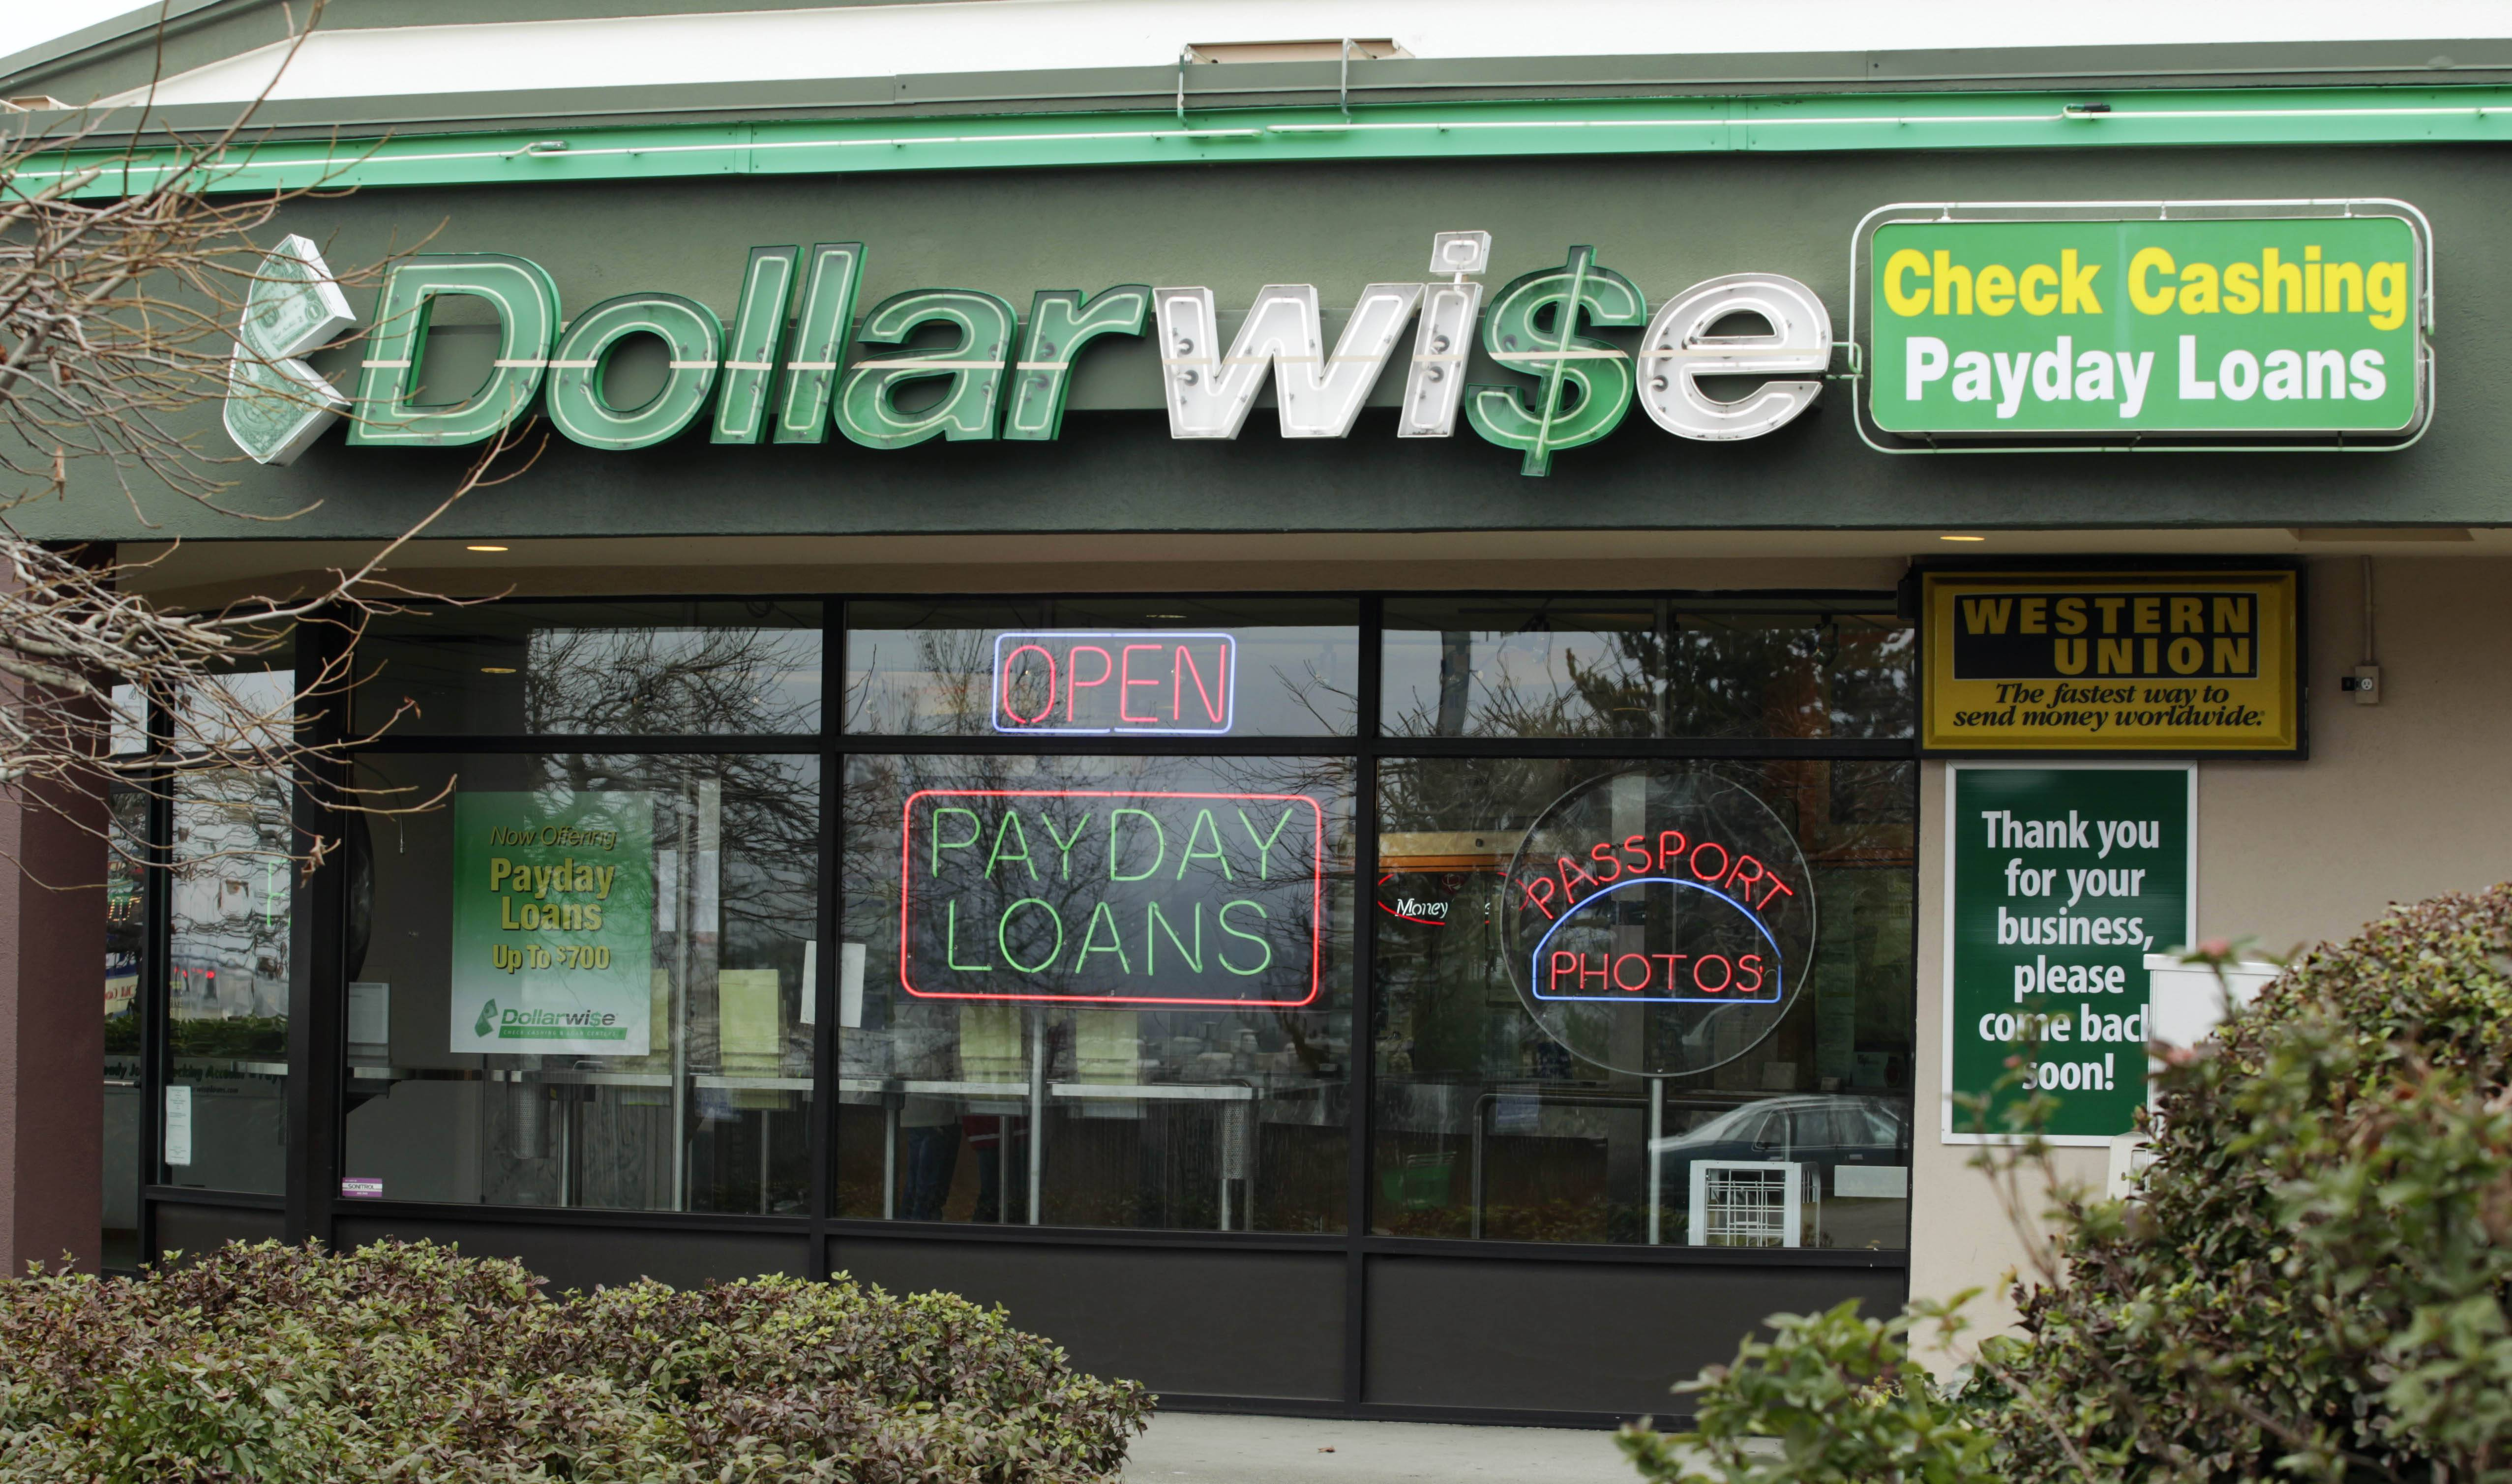 About half of all payday loans are made to people who extend the loans so many times they end up paying more in fees than the original amount they borrowed, a report by a federal watchdog has found.